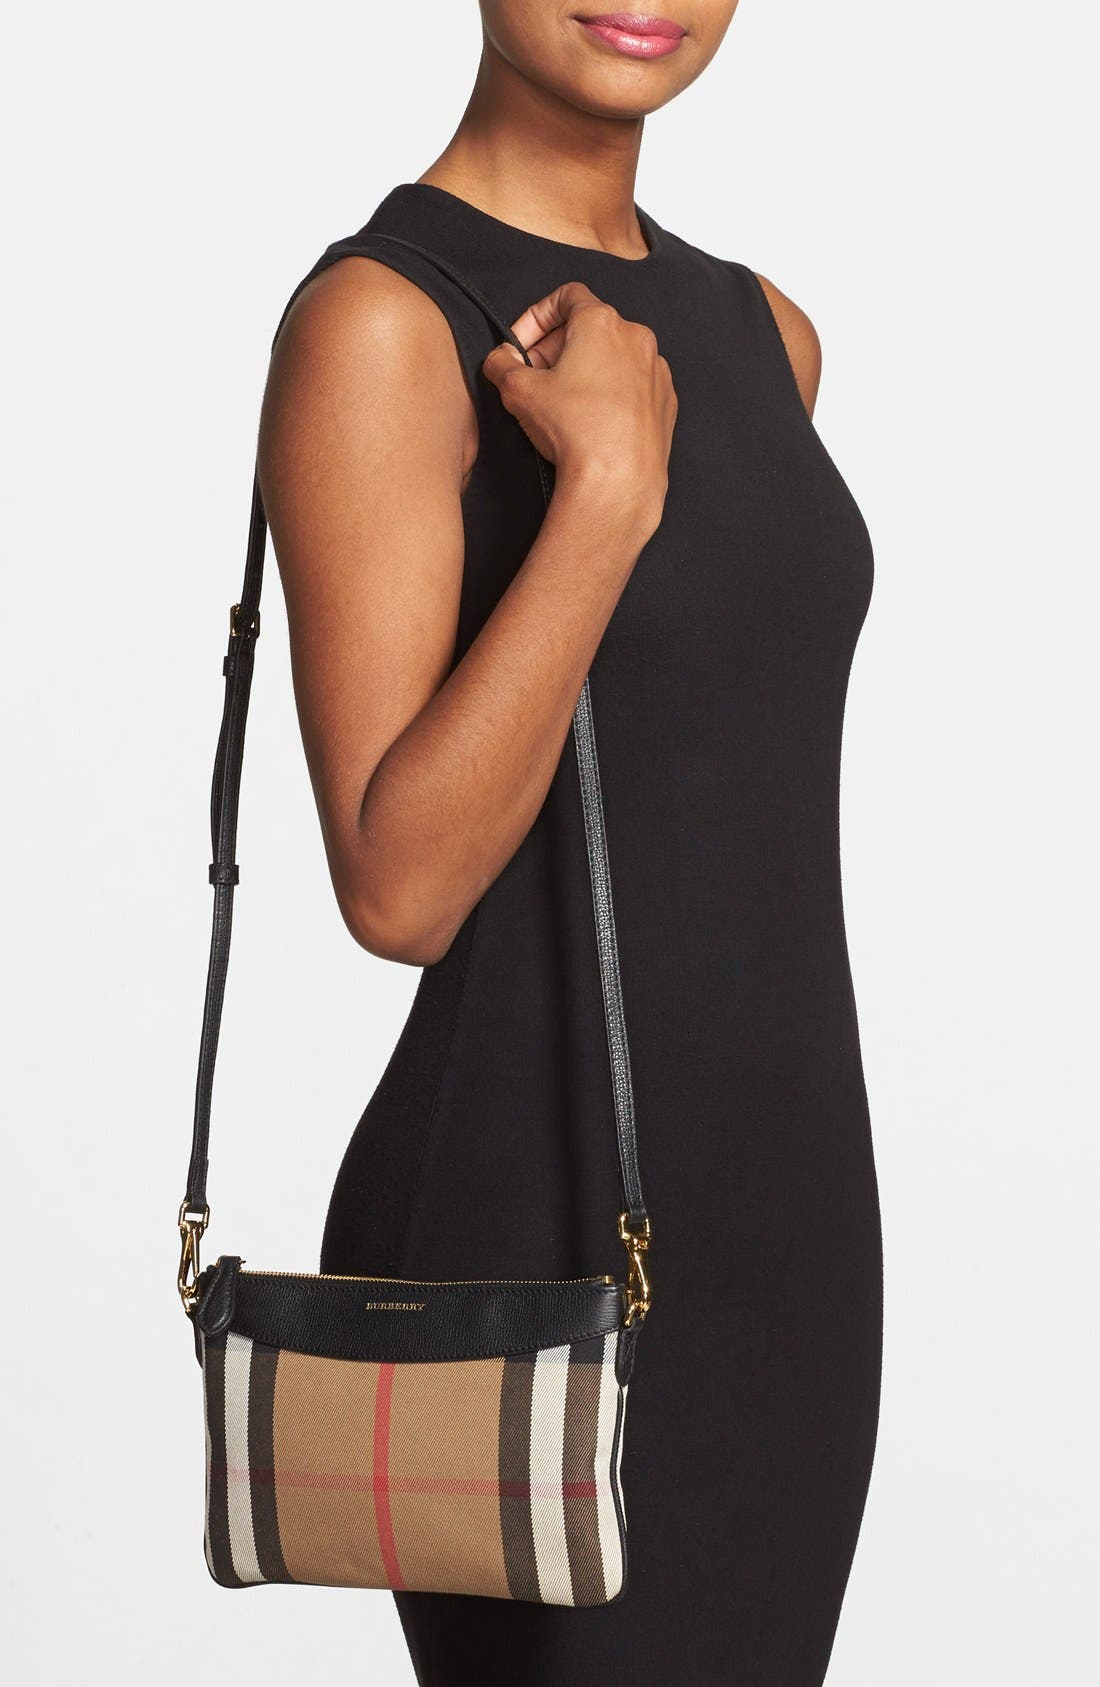 BURBERRY, 'Peyton - House Check' Crossbody Bag, Alternate thumbnail 2, color, 001